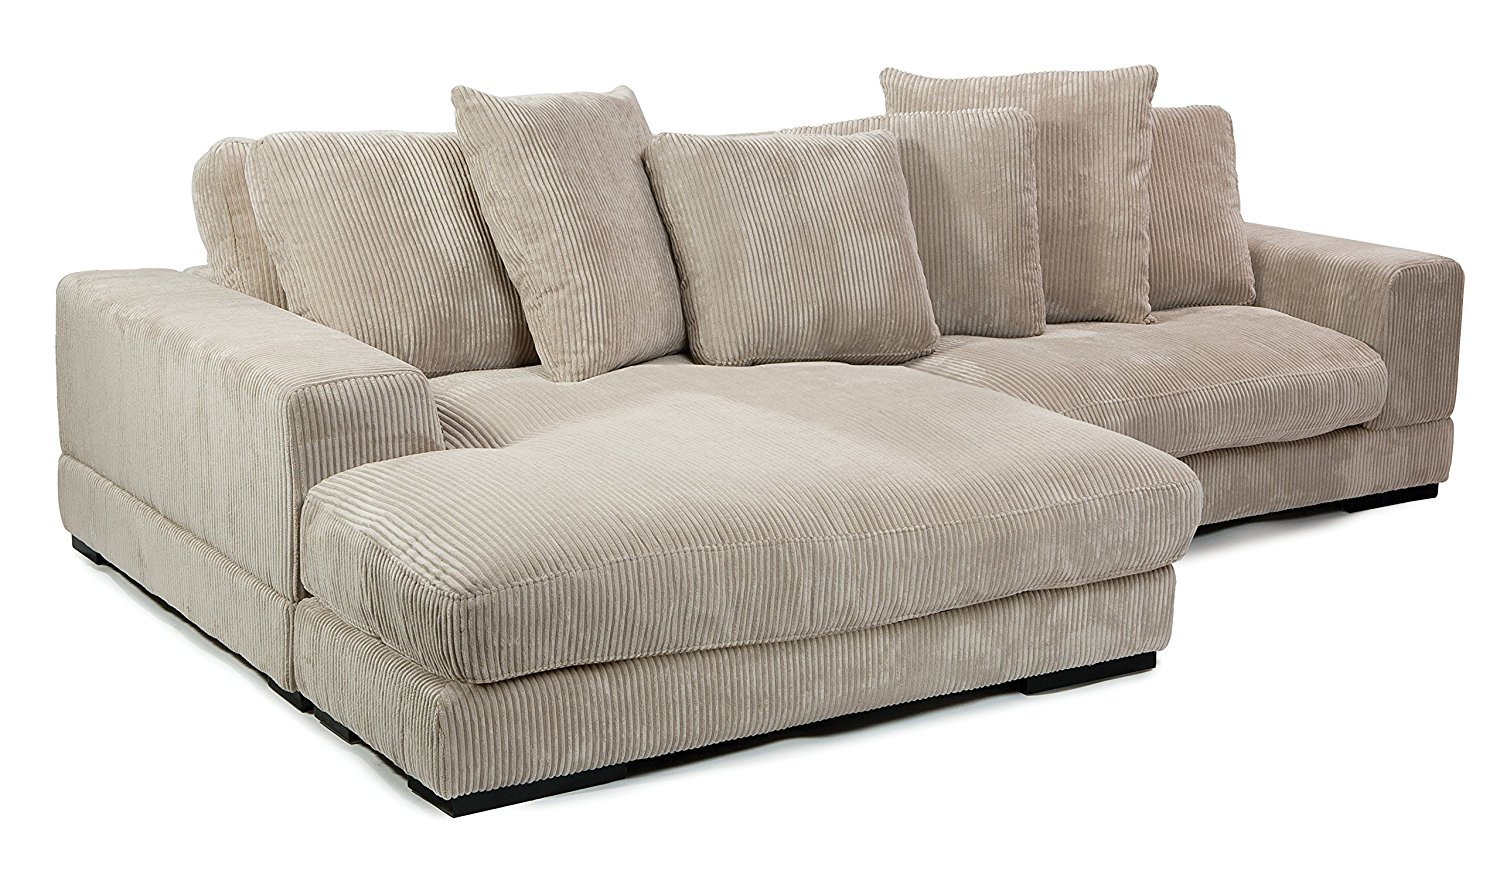 Most Comfortable Modern Sectionals Most Comfortable Sectional Couches Decor Ideasdecor Ideas